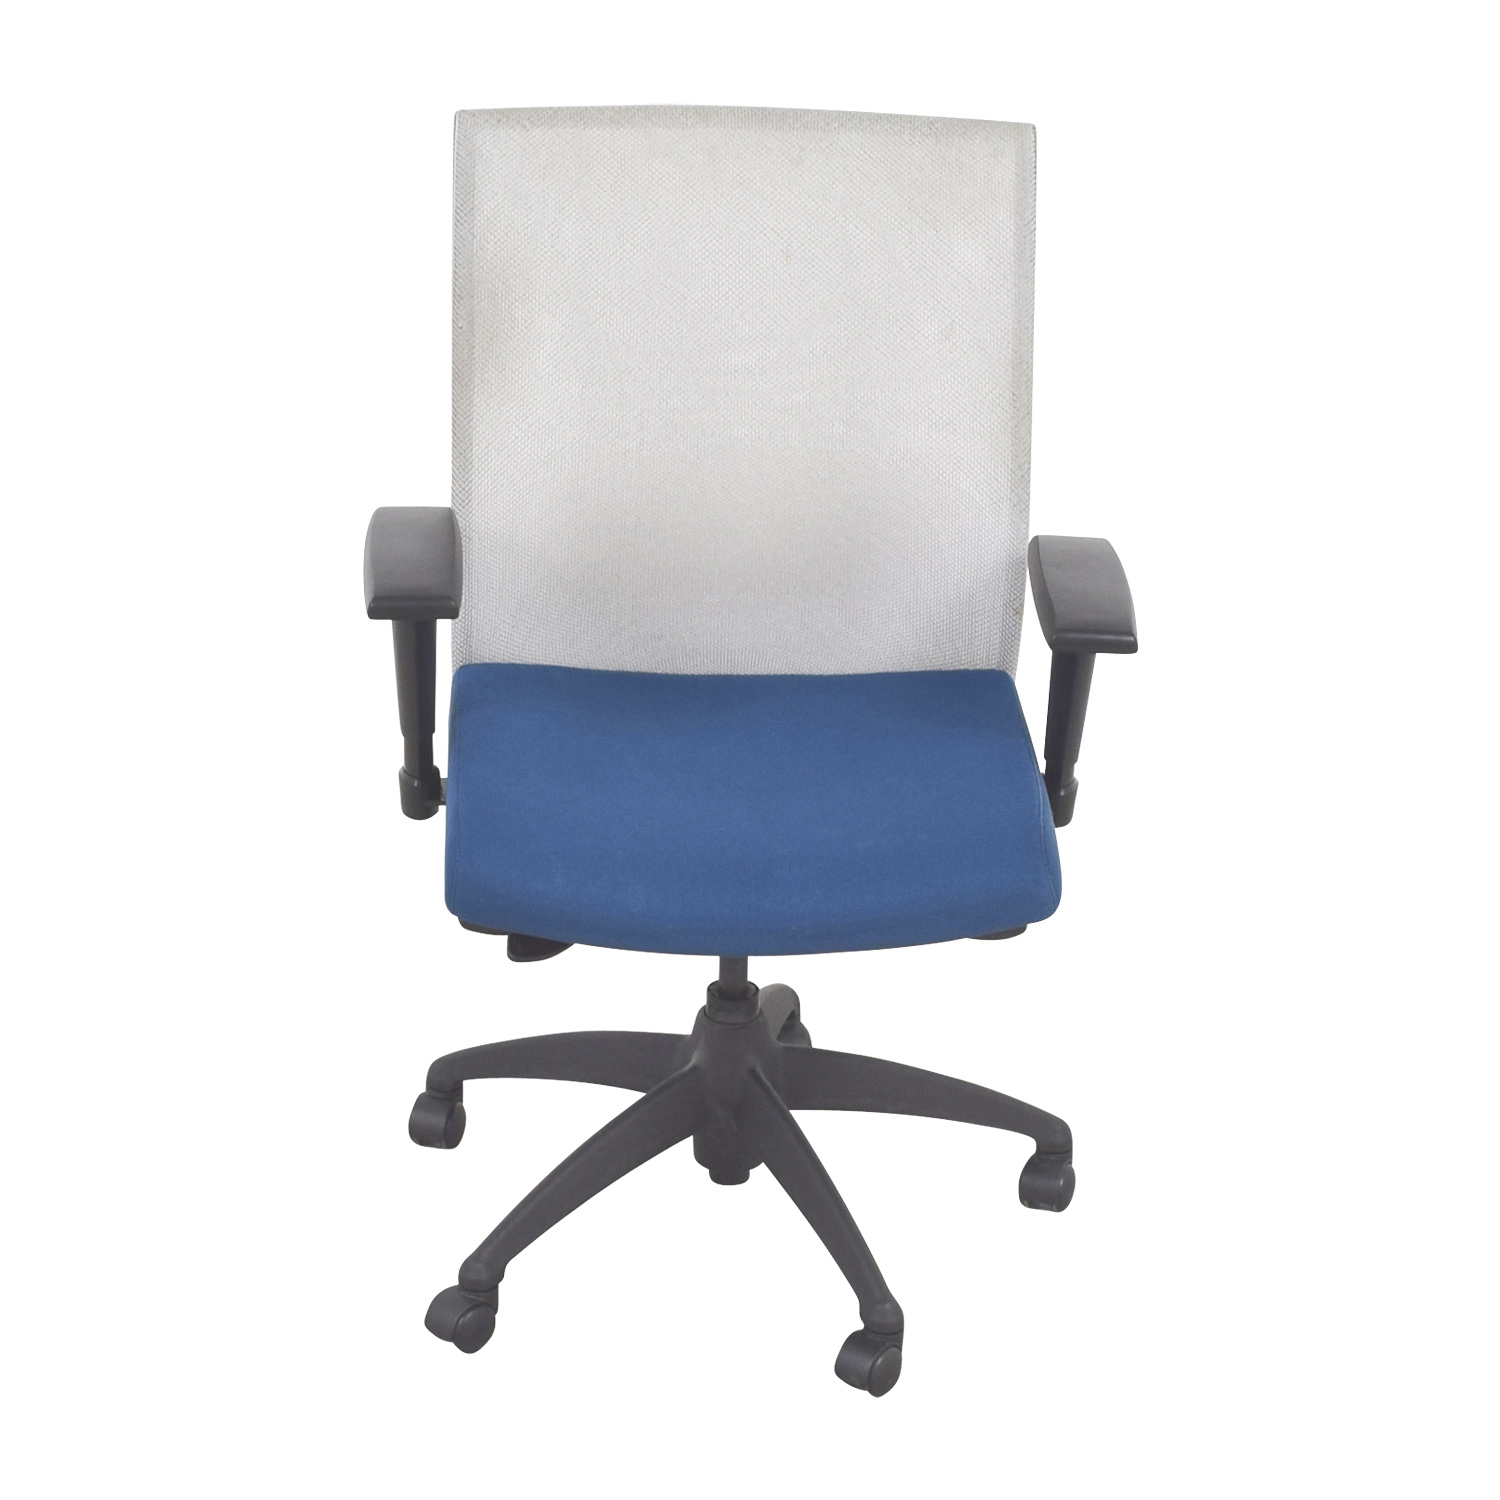 buy Stylex Blue Adjustable Arms Task Chair Stylex Home Office Chairs